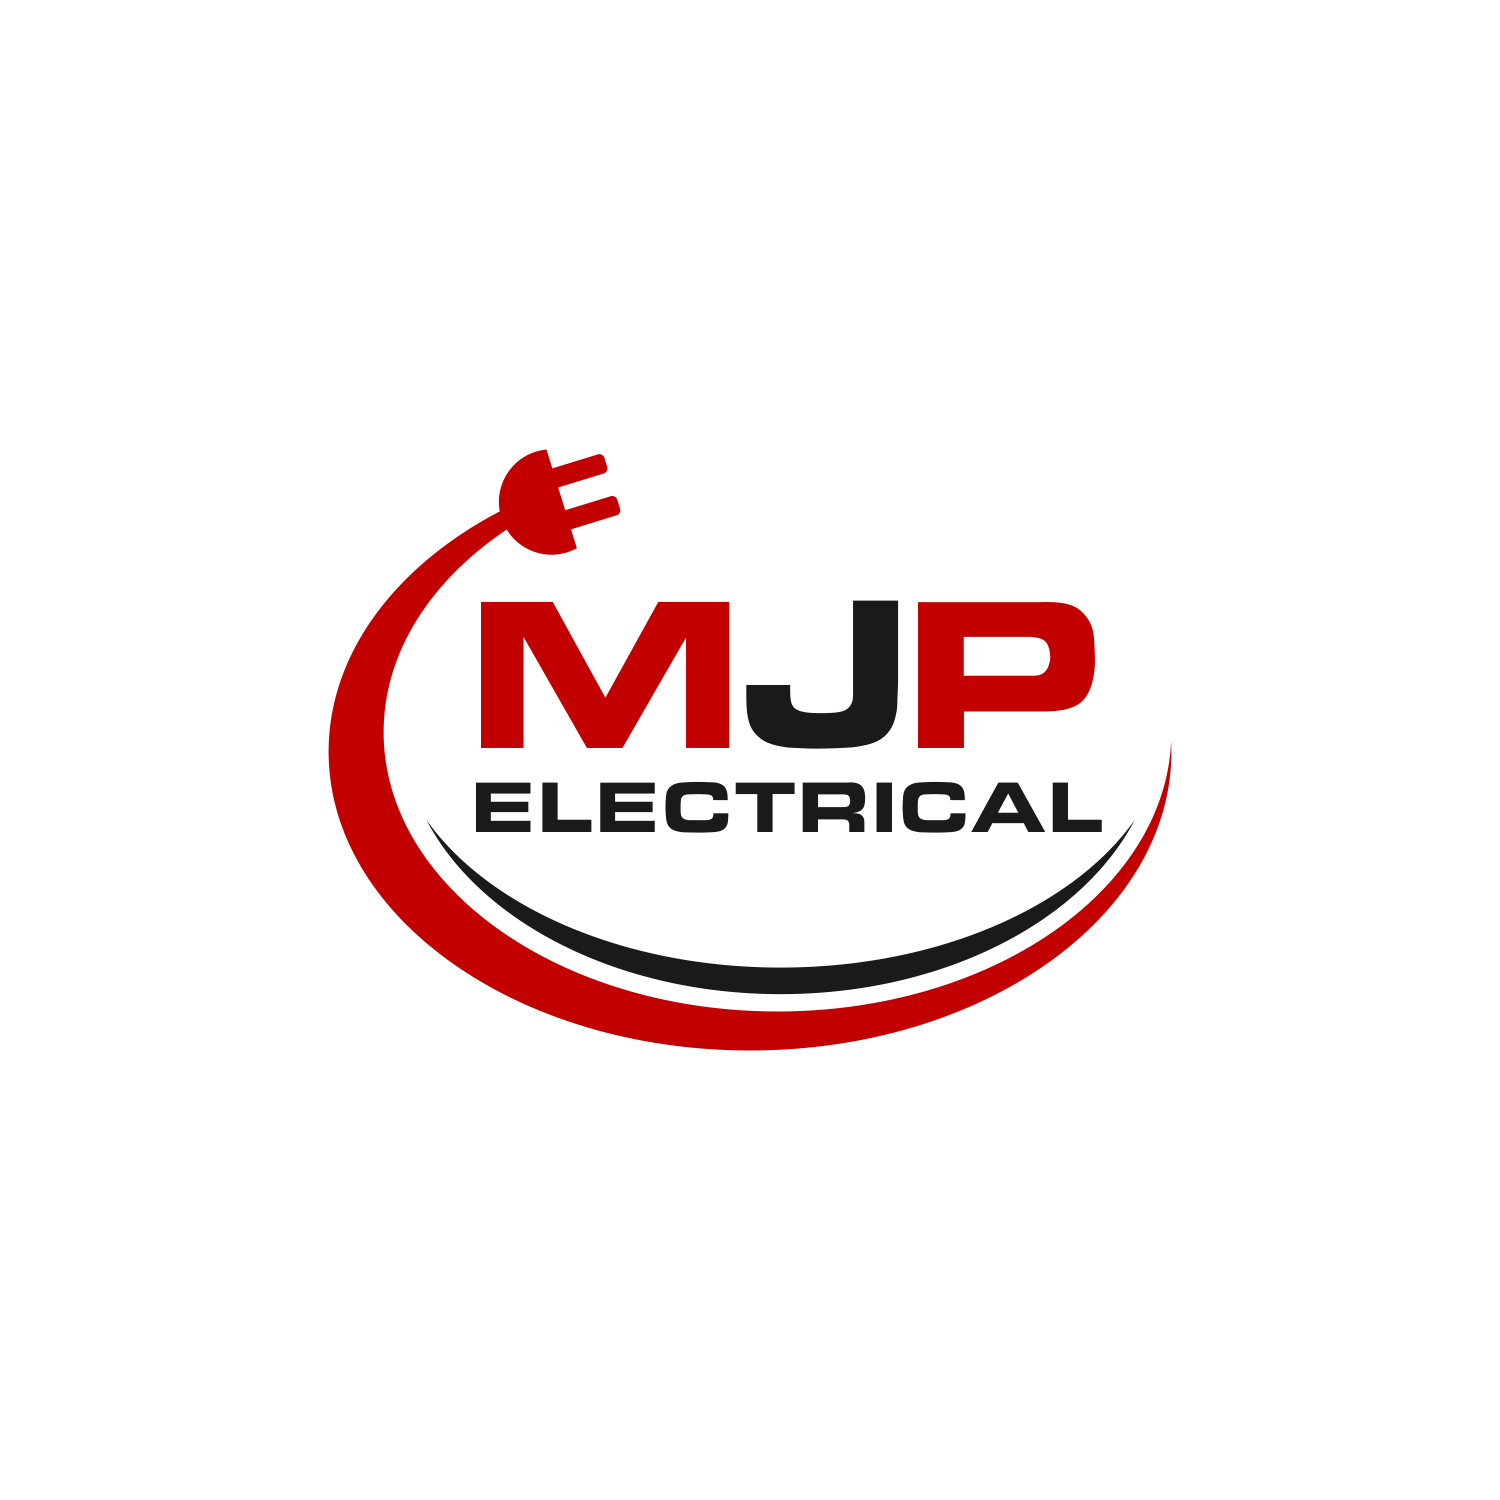 Serious Modern Electrician Logo Design For Mjp Electrical By V Solutions Design 14026665,Design Your Own Mug Online